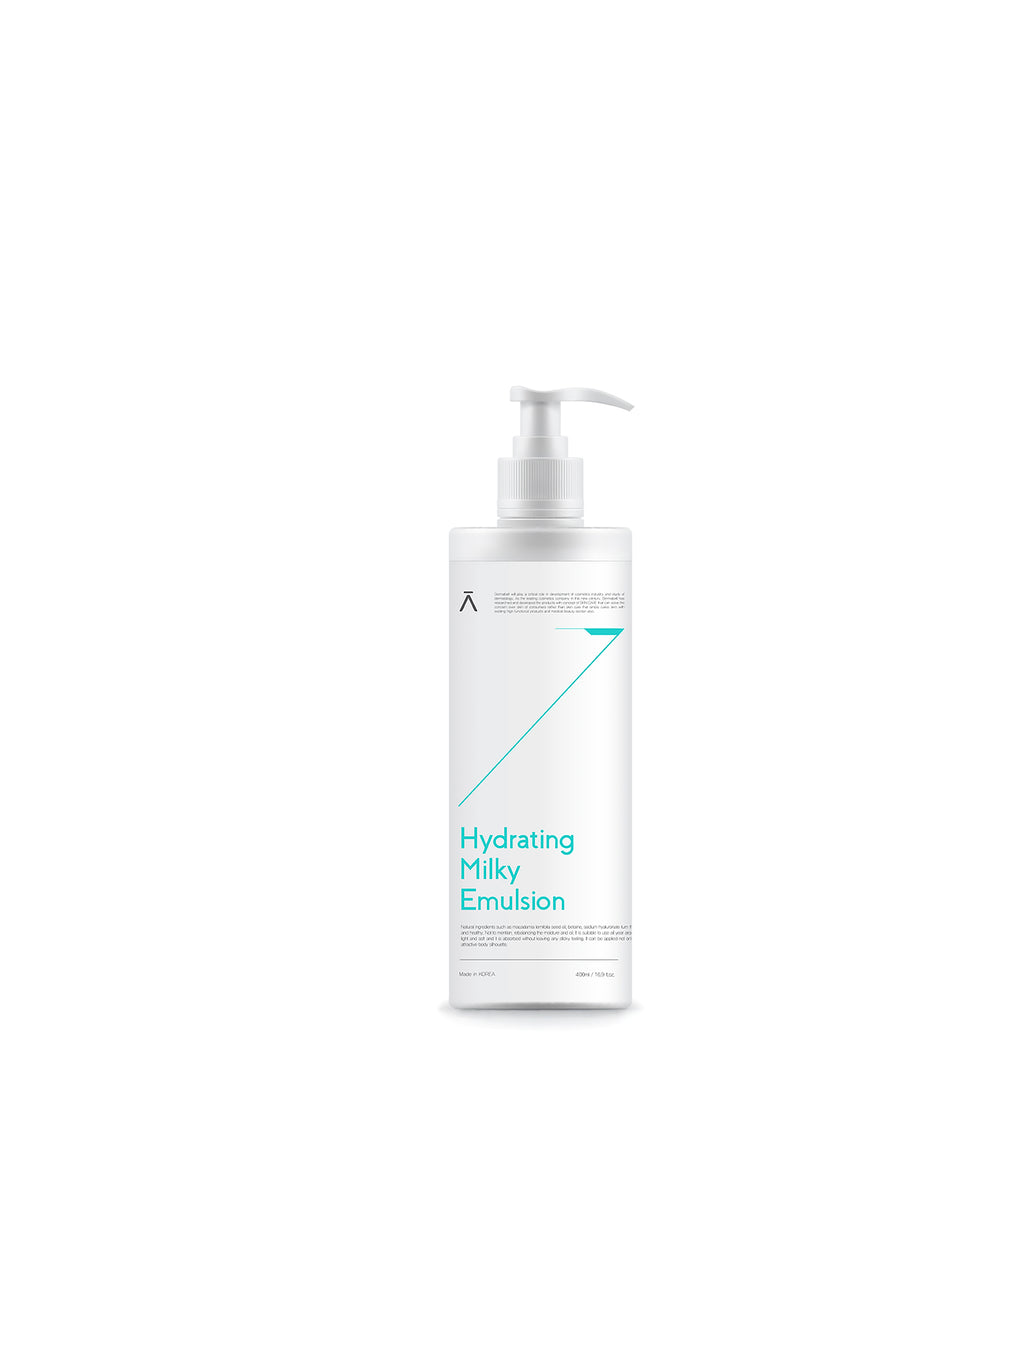 Hydrating Milky Emulsion (Moisturizing Milk Lotion) Moisturiser by DERMABELL PRO